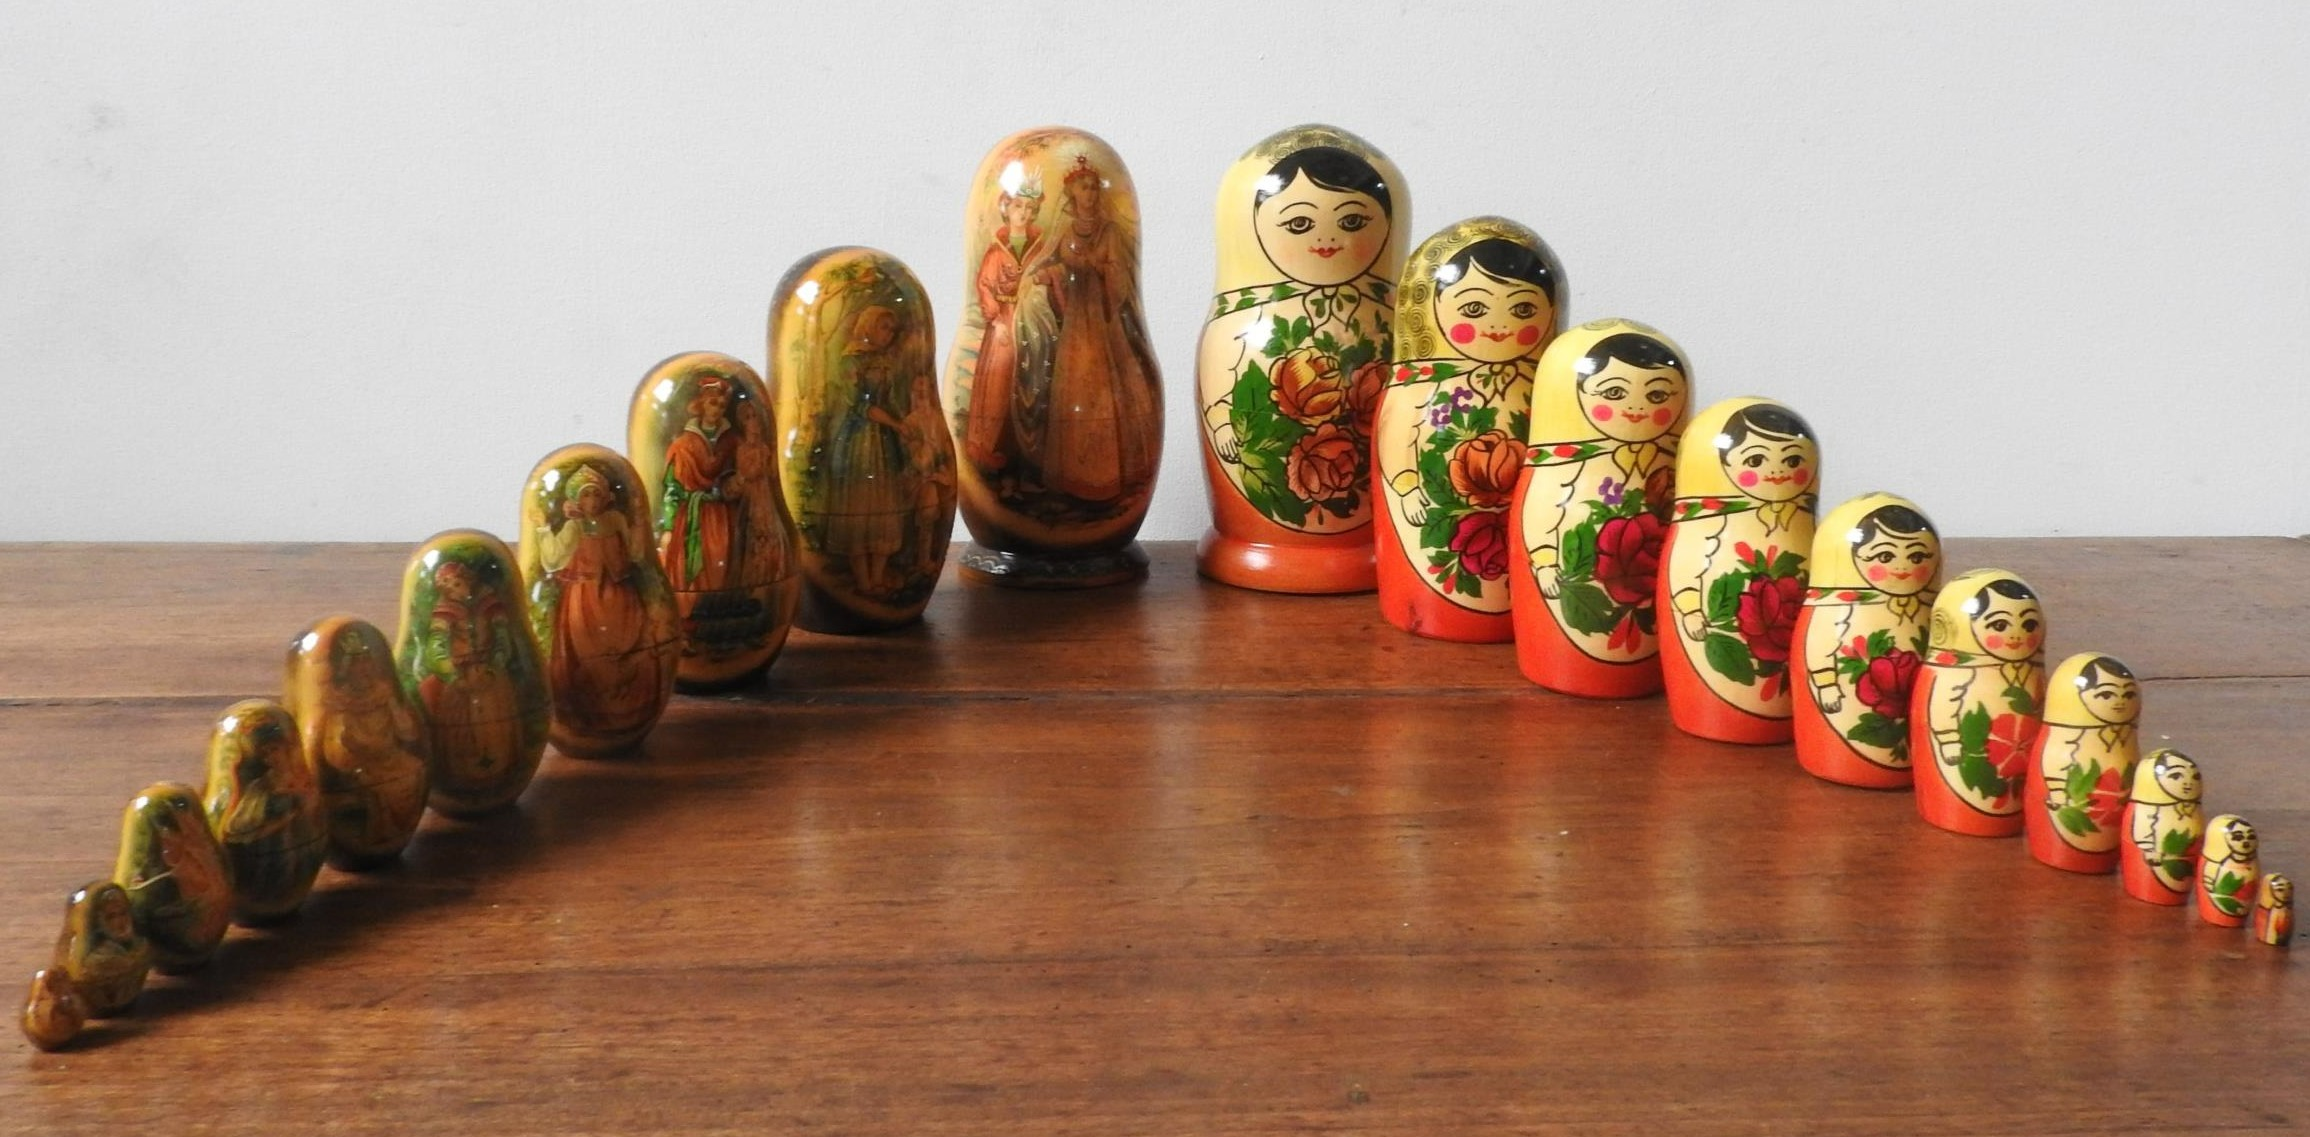 TWO SETS OF STACKING GRADUATED RUSSIAN DOLLS, ten dolls in each set, one set in traditional doll - Image 2 of 4